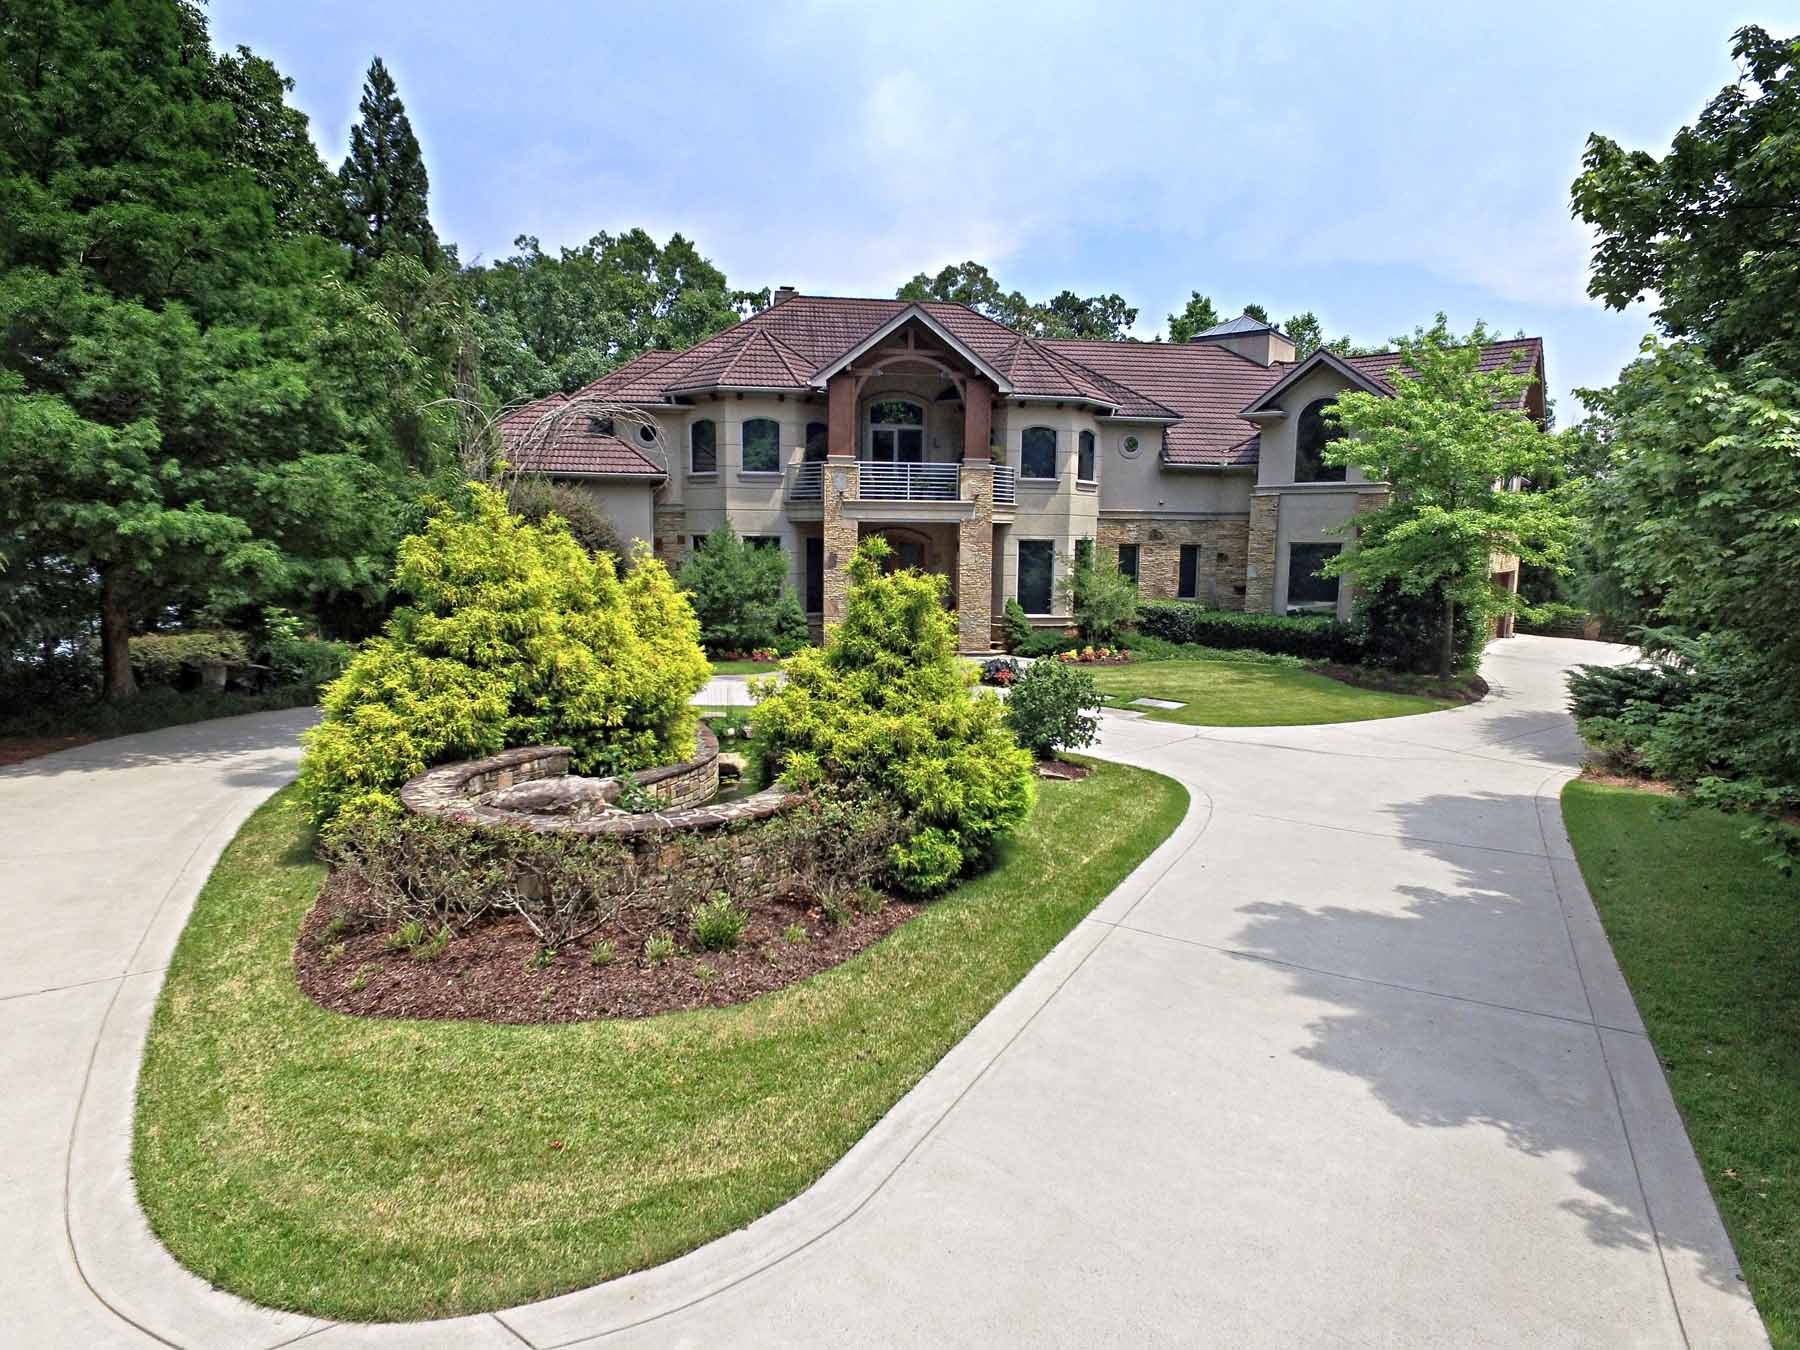 Single Family Home for Active at Magnificent Lake Lanier Gated Estate 7415 Breeze Bay Road Cumming, Georgia 30041 United States